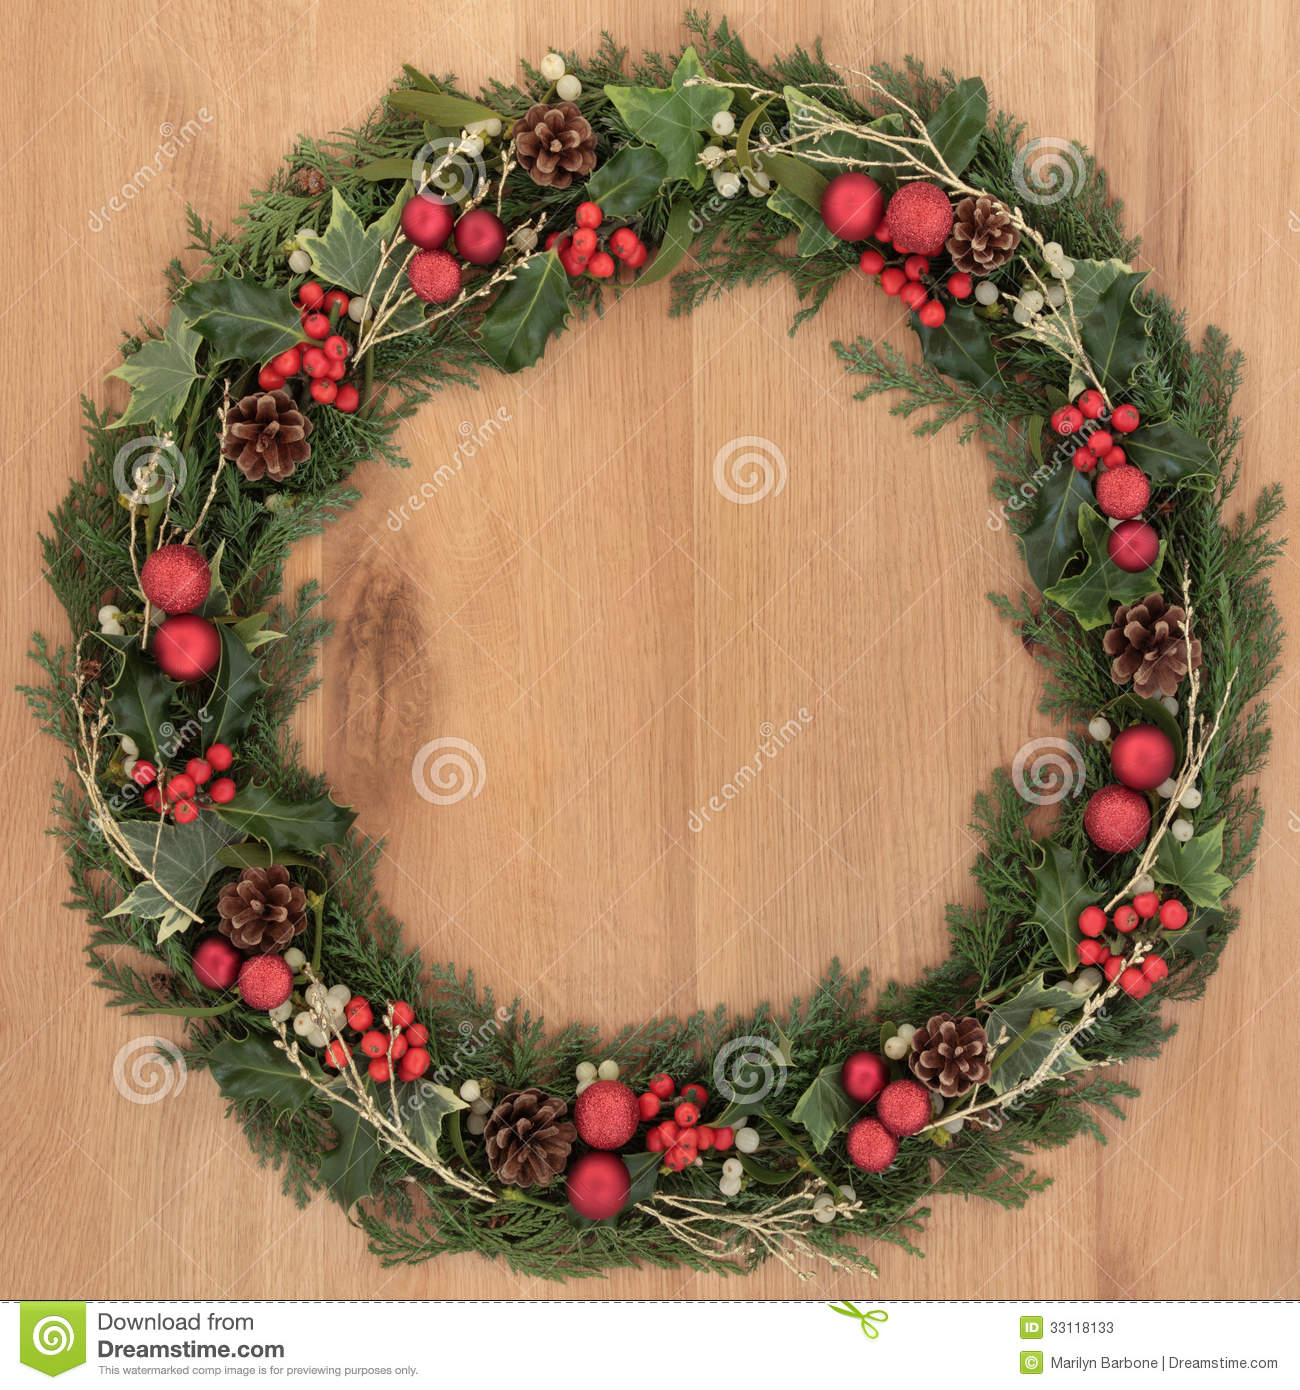 christmas wreath with red bauble decorations holly mistletoe ivy pine cones and cedar over oak background - Mistletoe Christmas Decoration